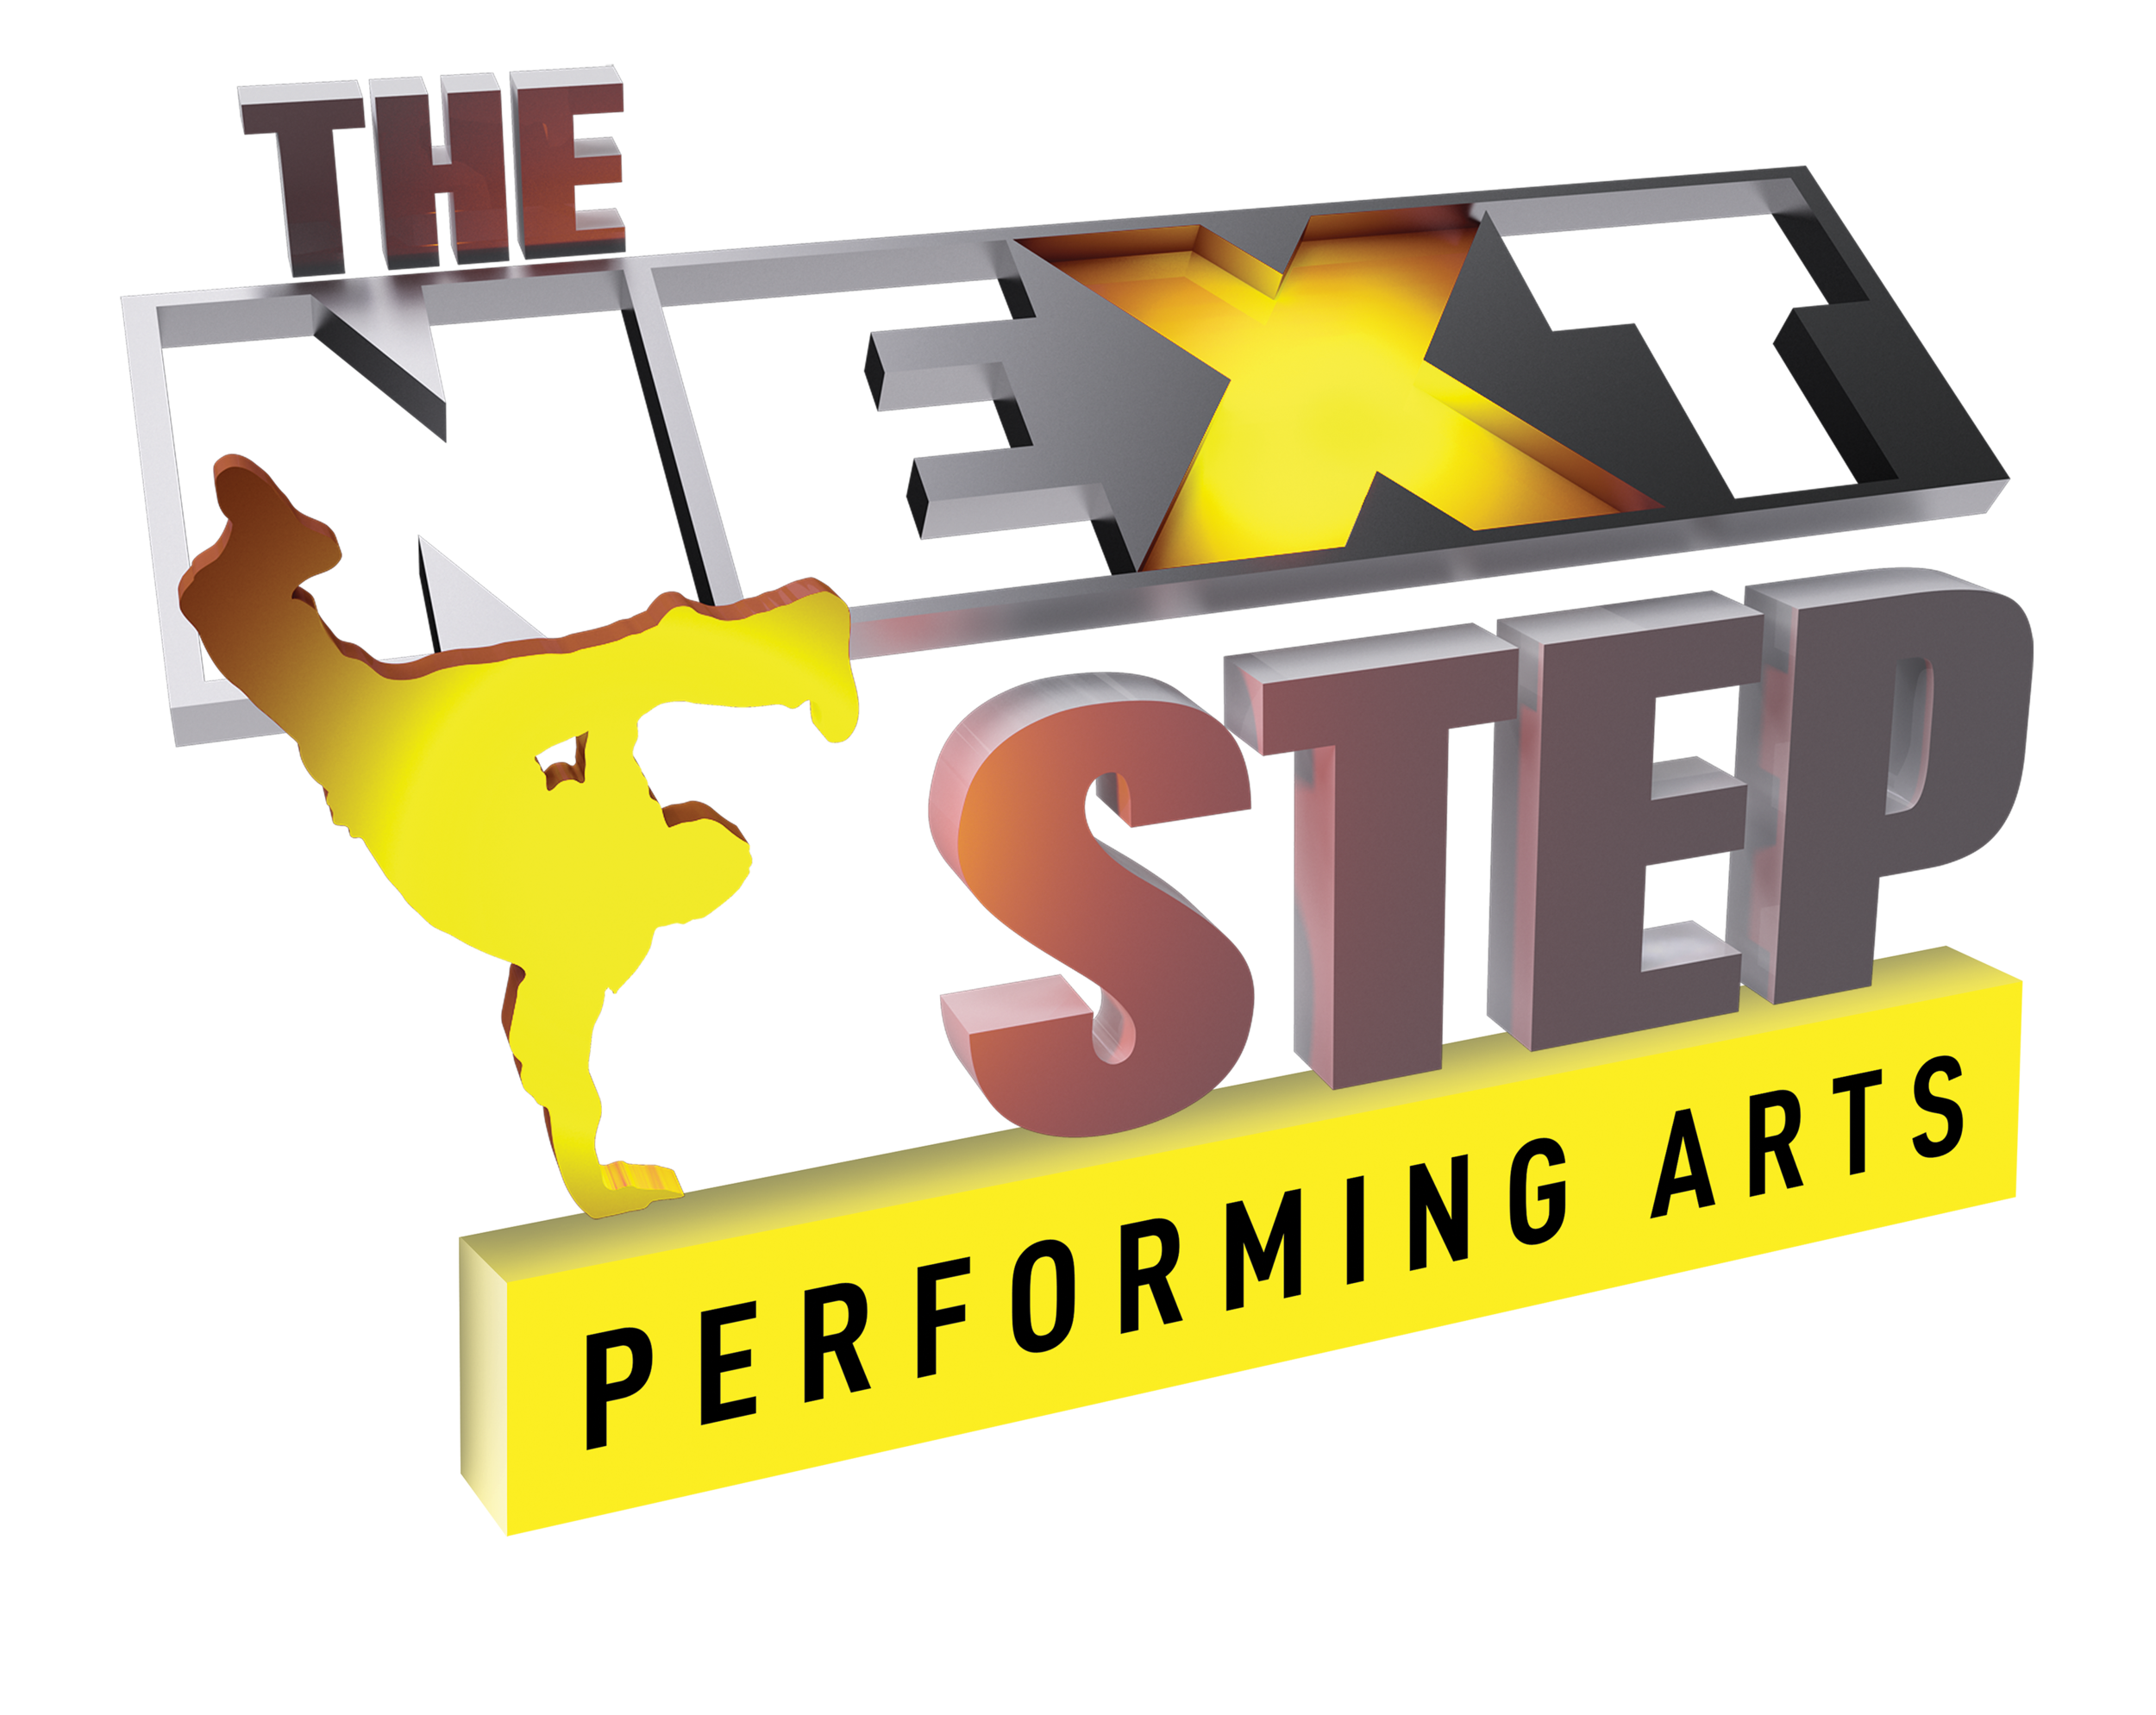 VENUE:  THE NEXT STEP PERFORMING ARTS  - 15/17 Bibby St, Chiswick NSW 2046